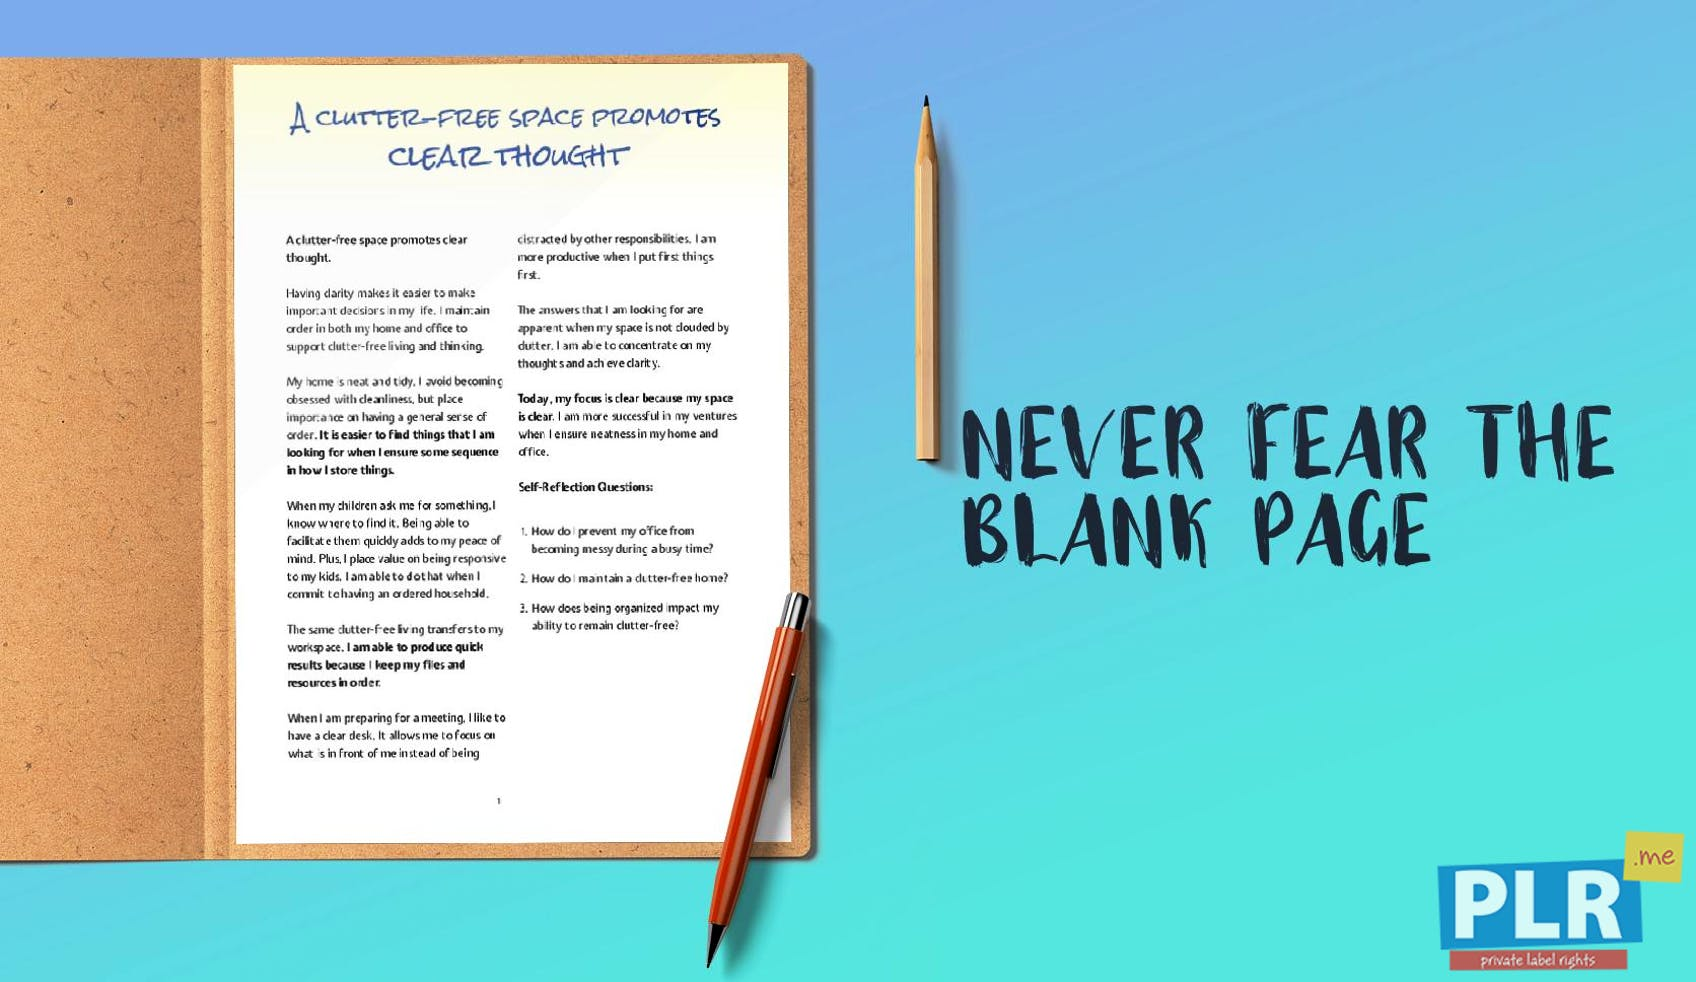 A Clutter Free Space Promotes Clear Thought